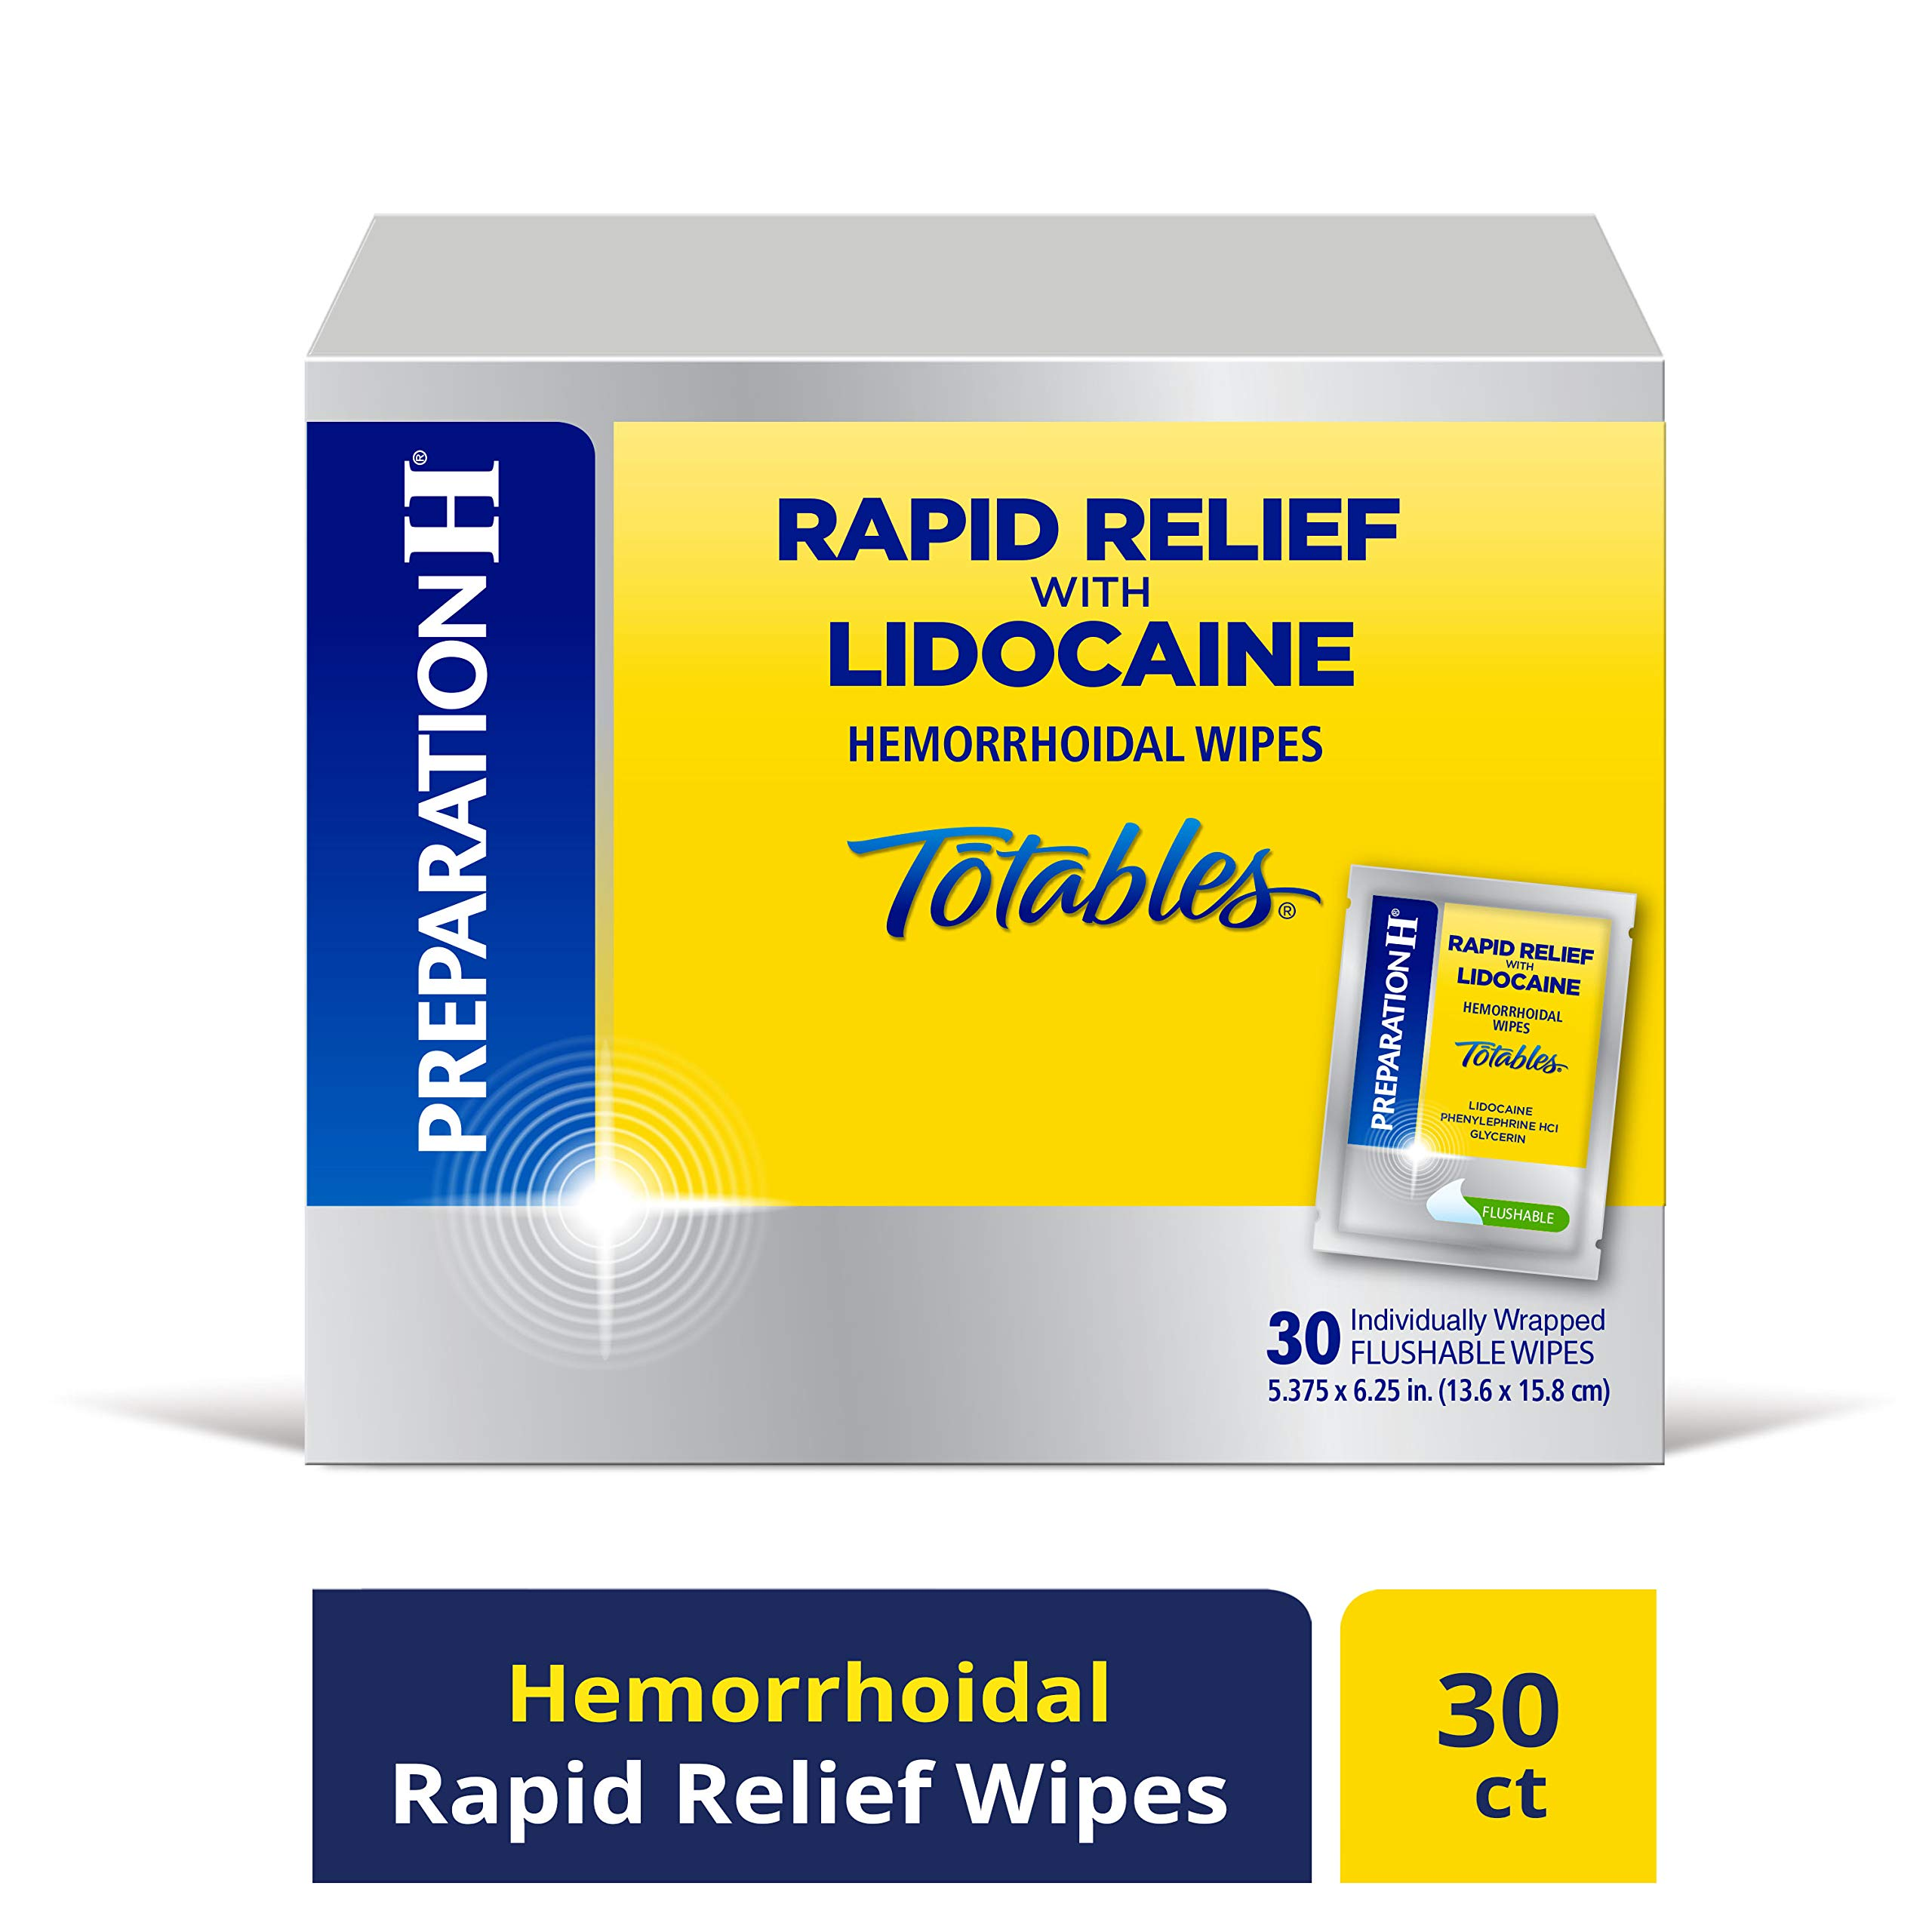 PREPARATION H Rapid Relief with Lidocaine Hemorrhoid Symptom Treatment Flushable Wipes, Numbing Relief for Pain, Burning & Itching, Reduces Swelling, 30 Count Box